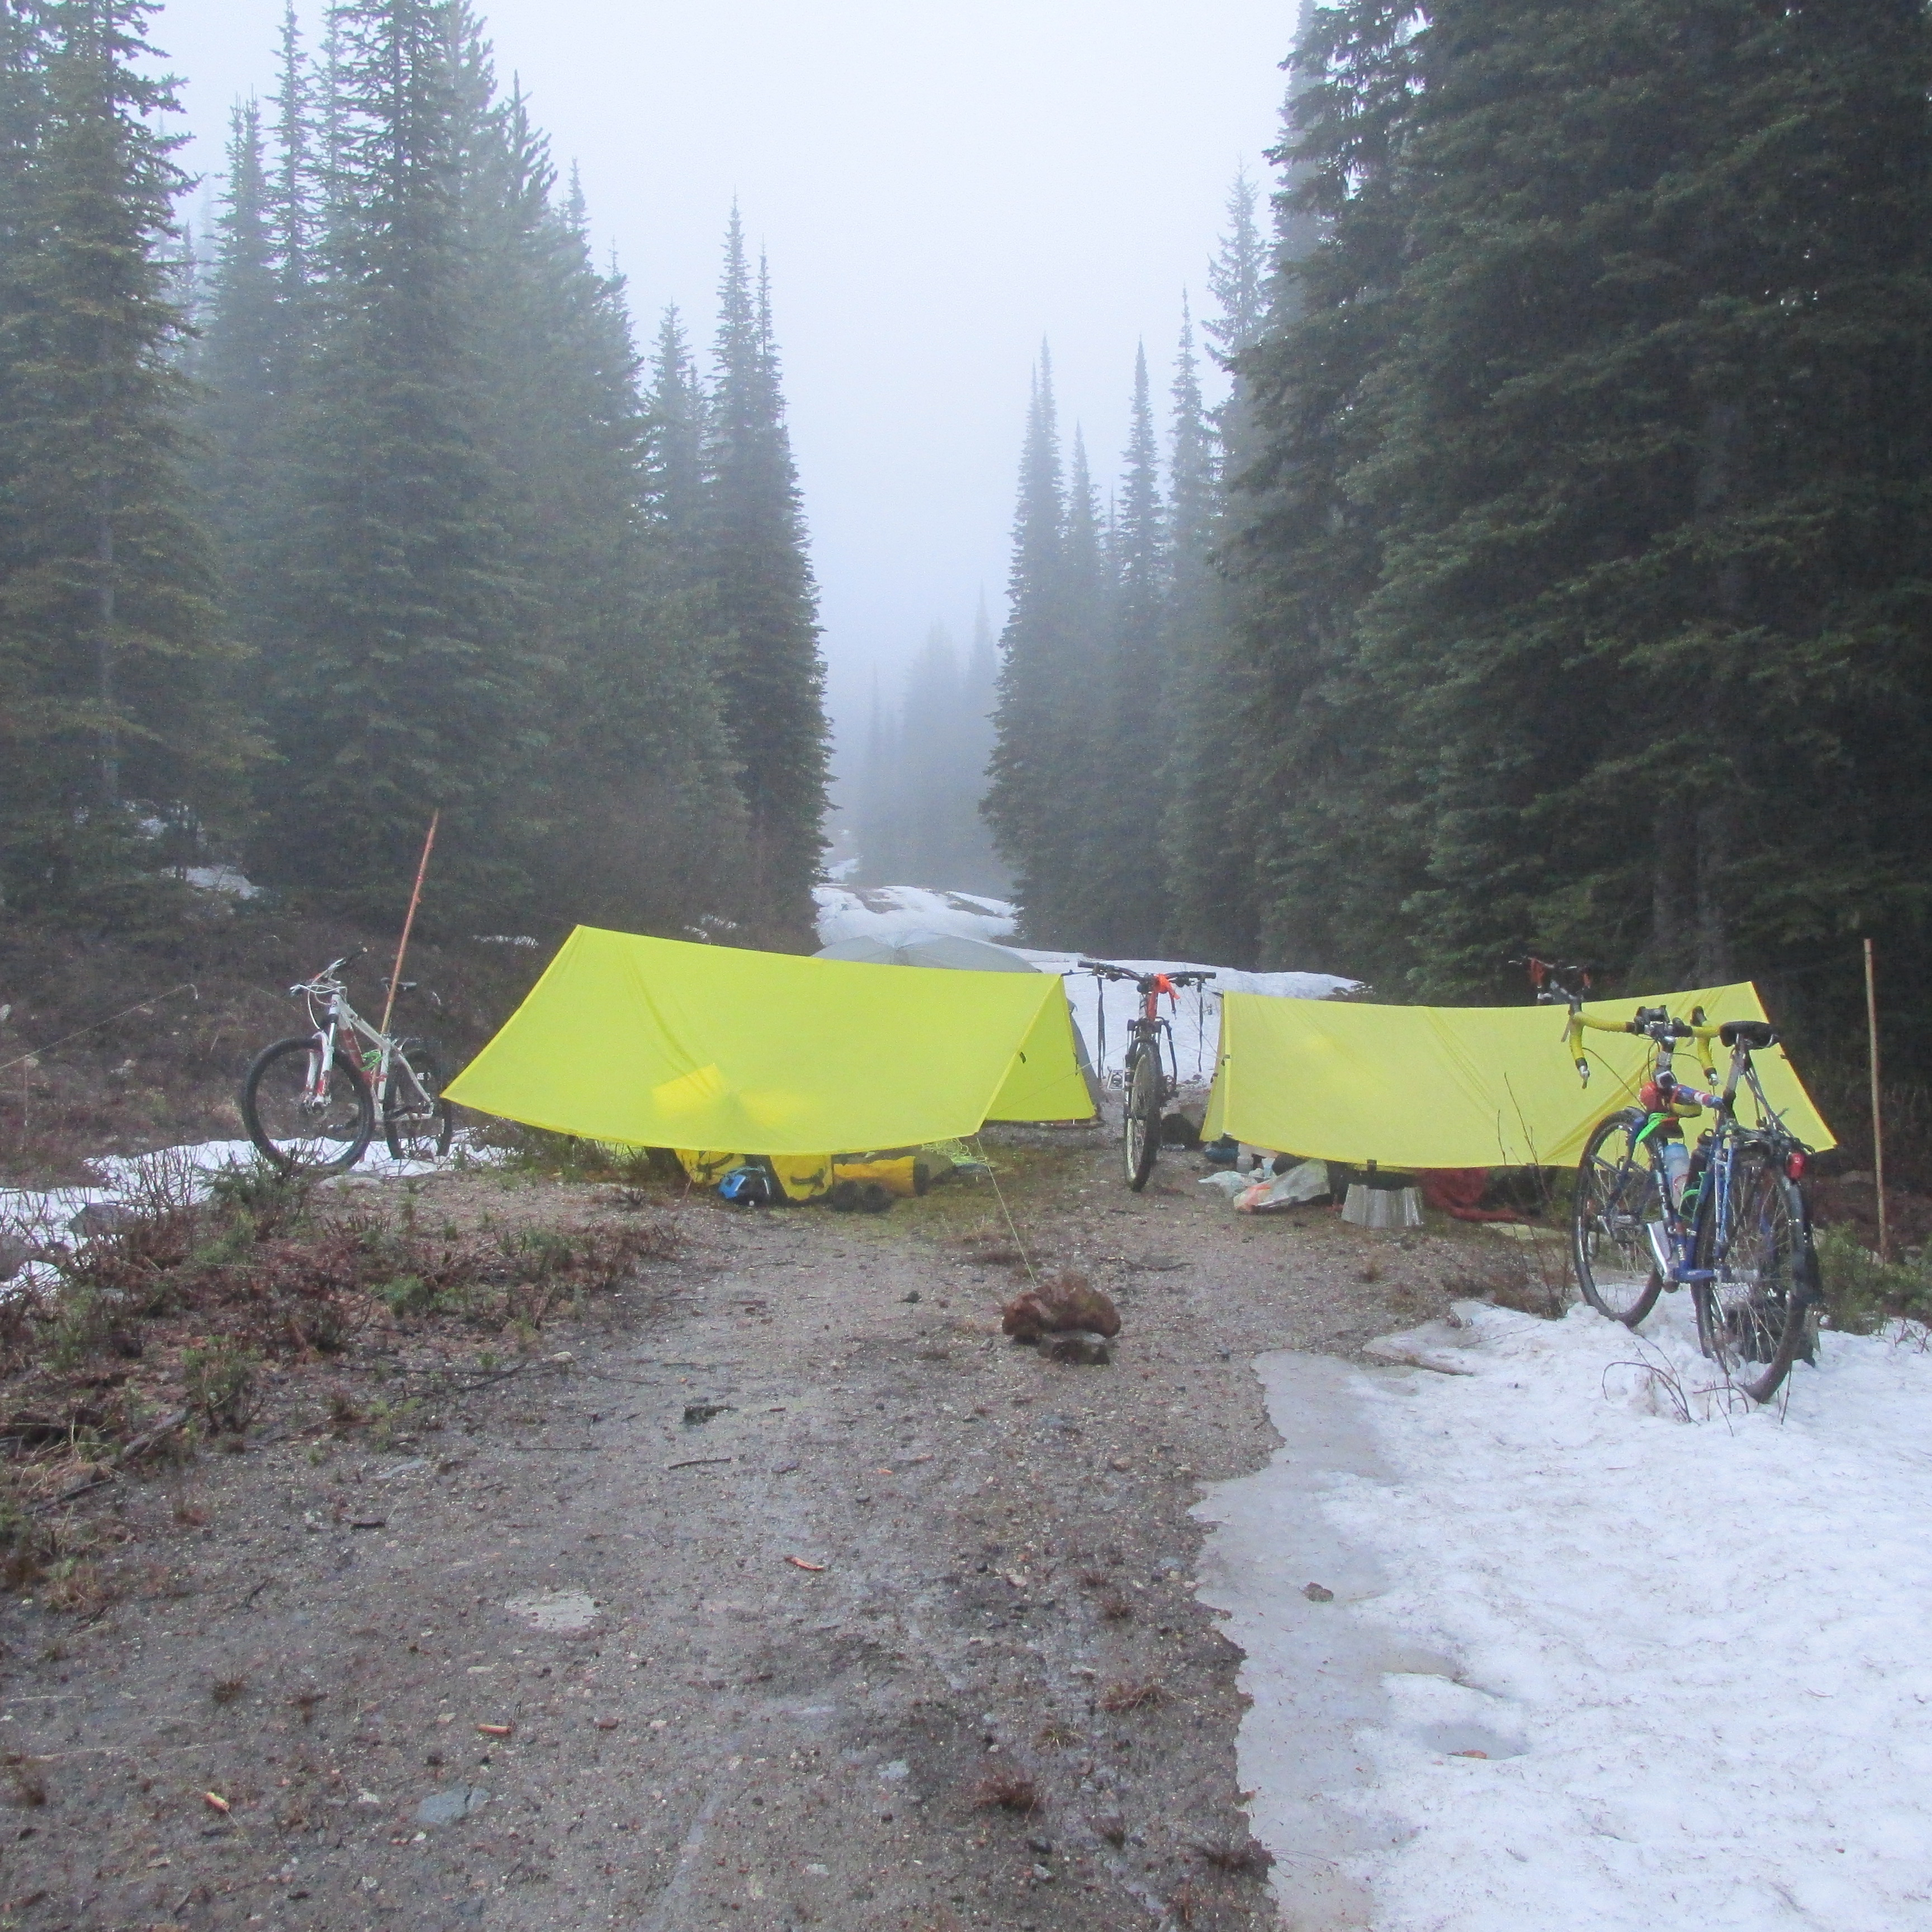 Camp Misery, on Mount Baldy's rain-and-slush sodden cat track. Photo by Elliott Skierszkan.